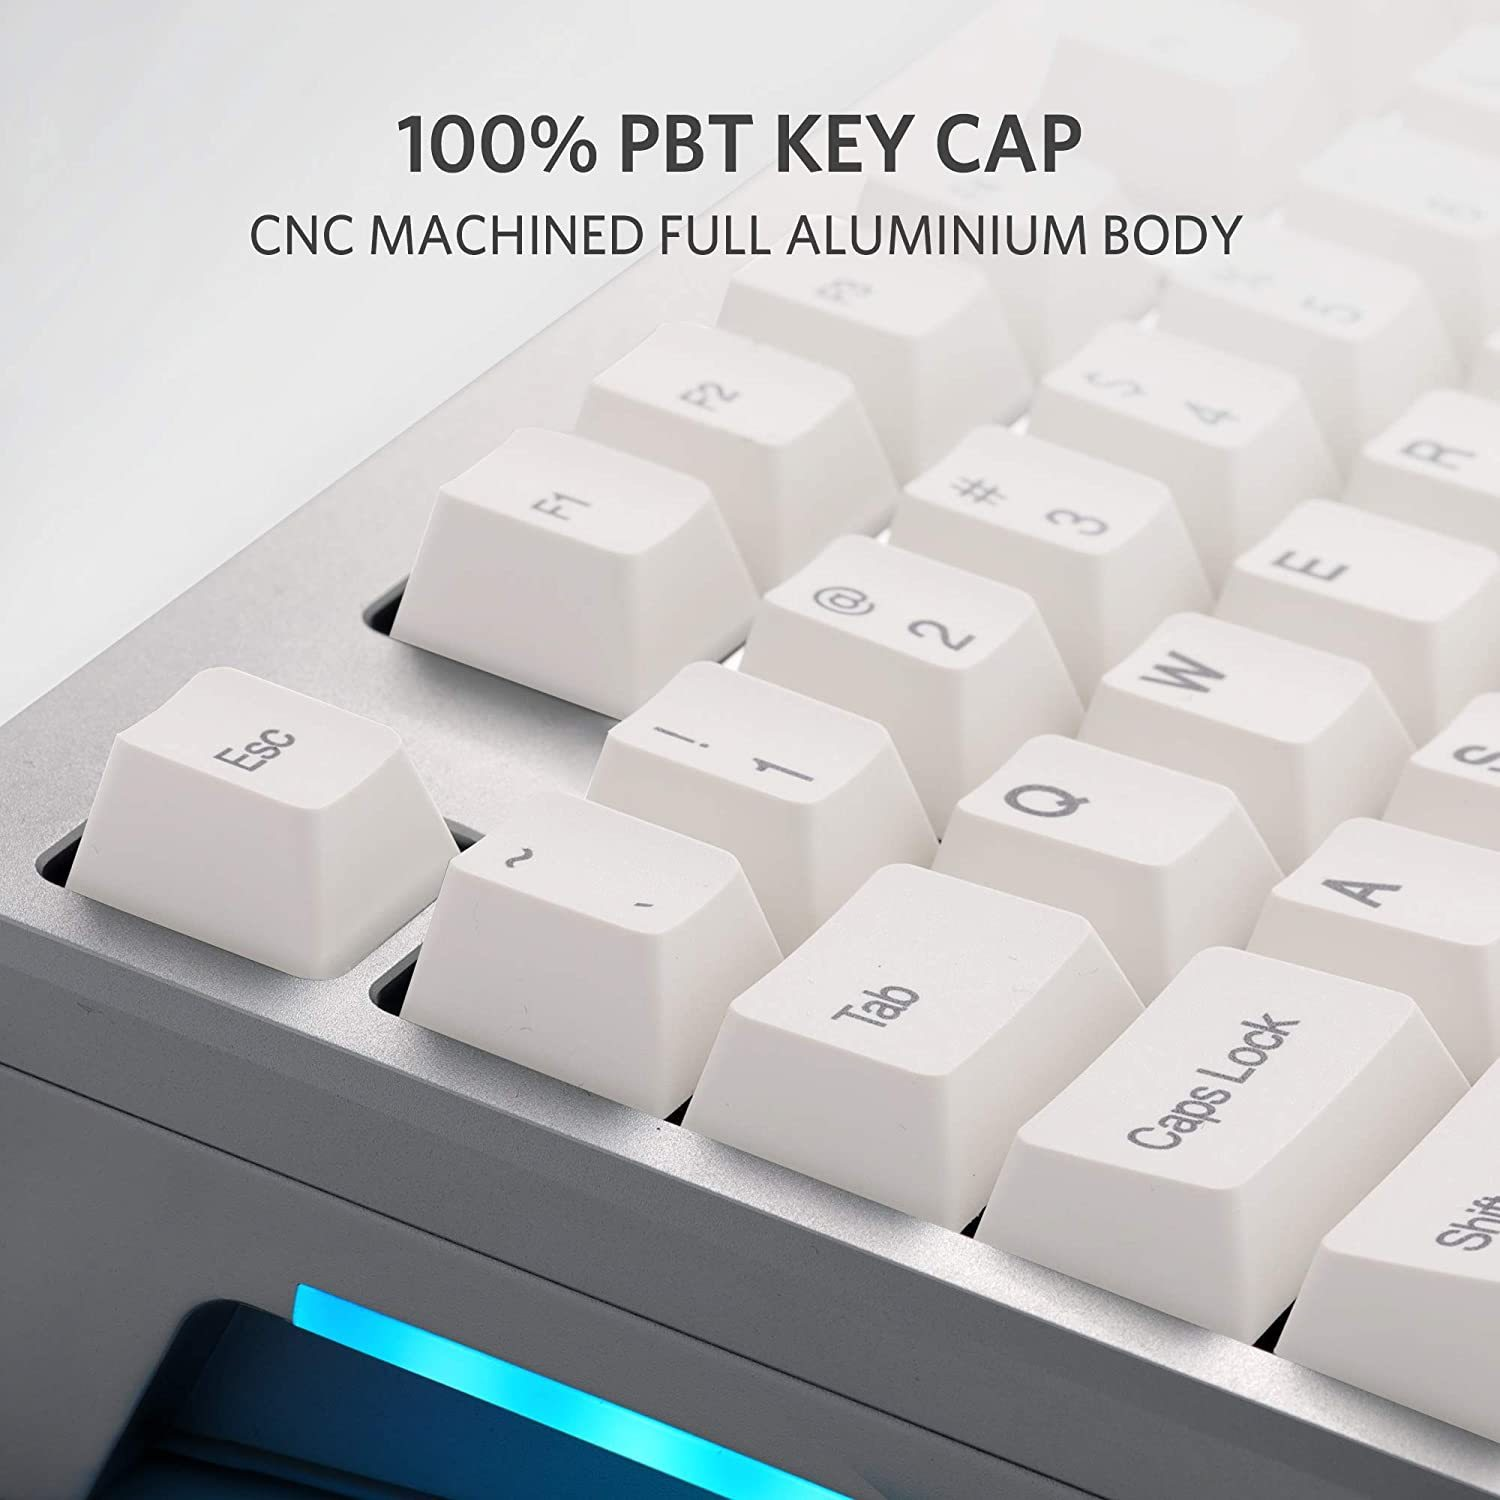 AR87 Mechanical Keyboard, CNC Full Aluminum Wired Gaming Keyboard with Cherry MX Brown Switches with Zipper Point, Dye Sublimated Keycaps, 100% Anti Ghosting, Side RGB LED Light, 6.8lbs